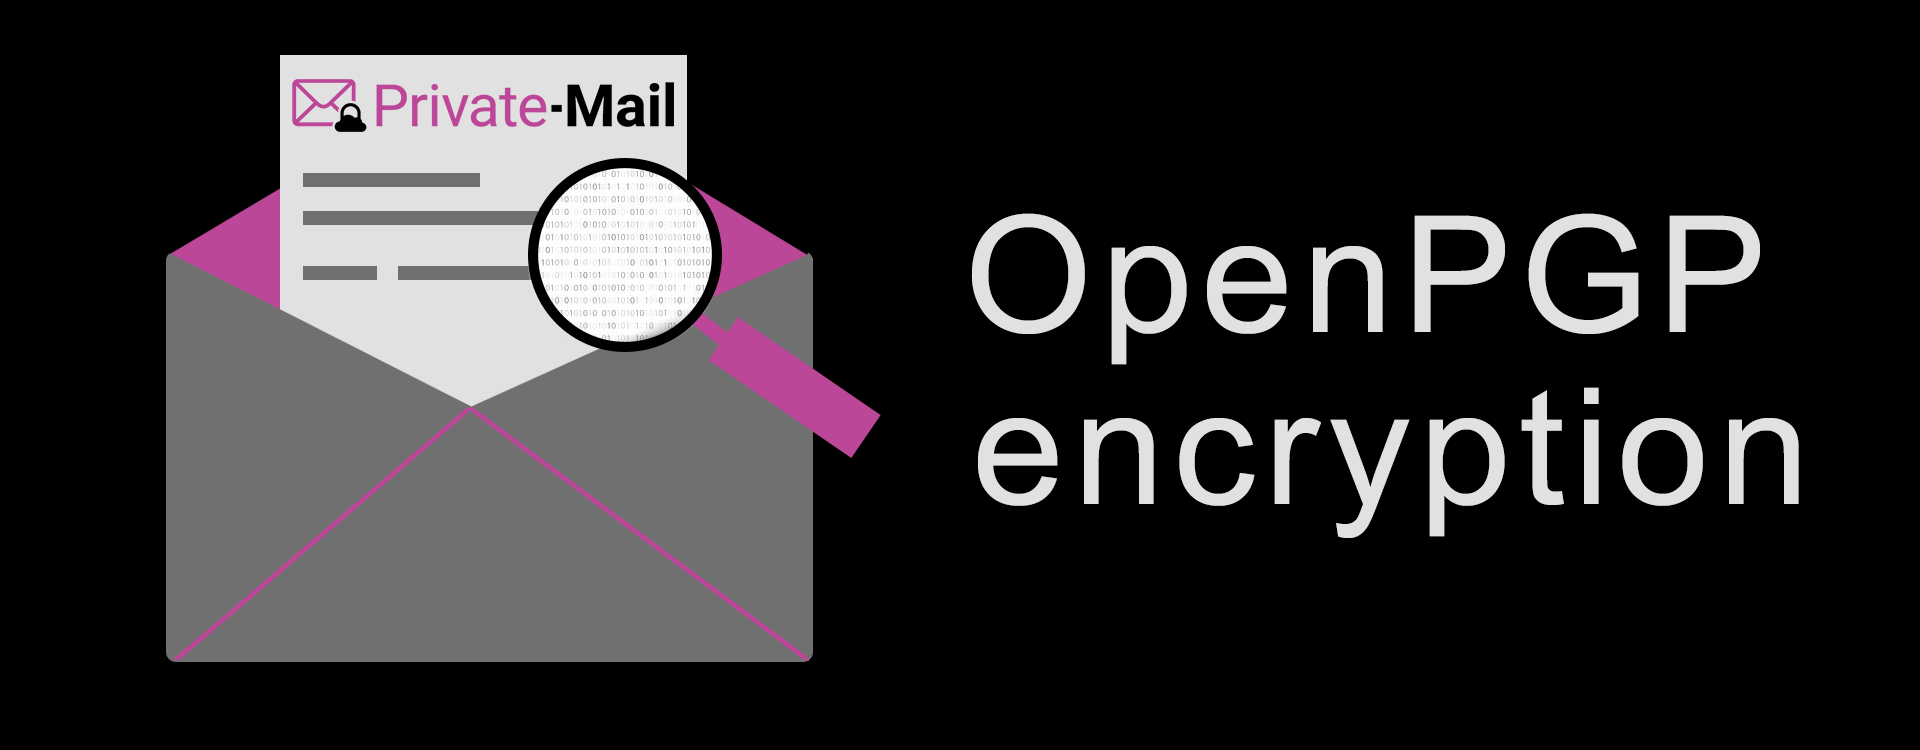 How Using OpenPGP Encryption Can Help Secure Email